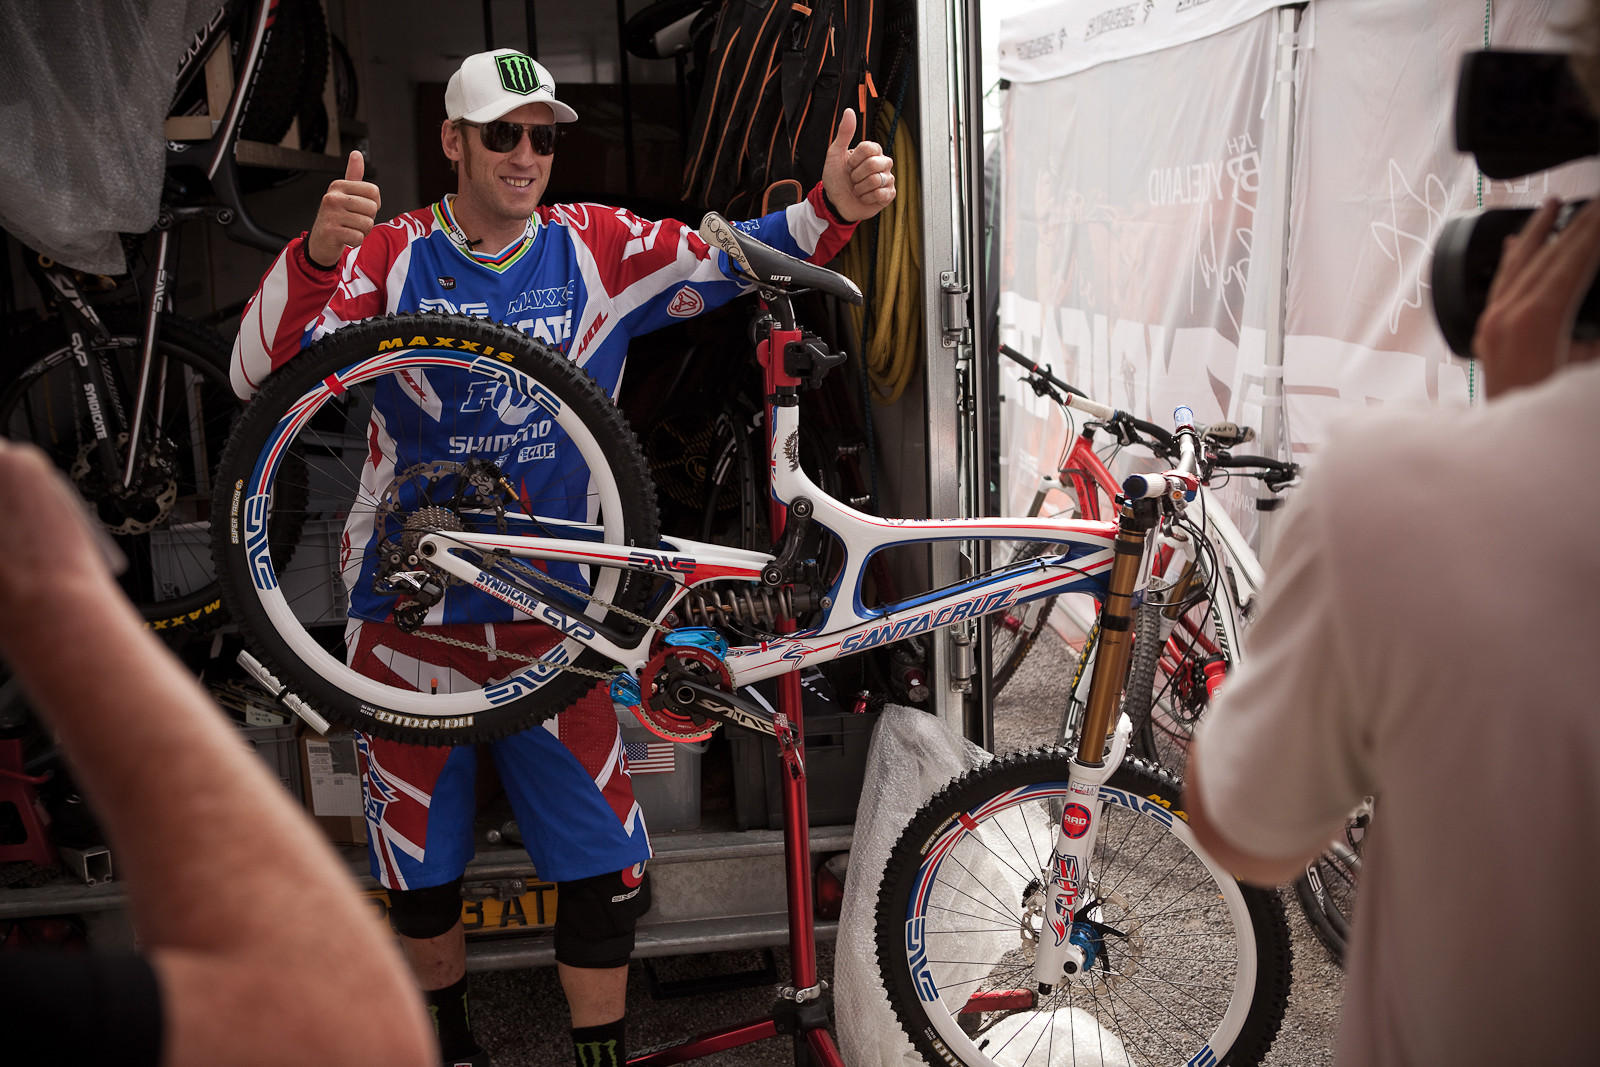 Steve Peat with his Custom Santa Cruz V10 for World Champs - New Kits and Gear for 2012 World Championships - Mountain Biking Pictures - Vital MTB